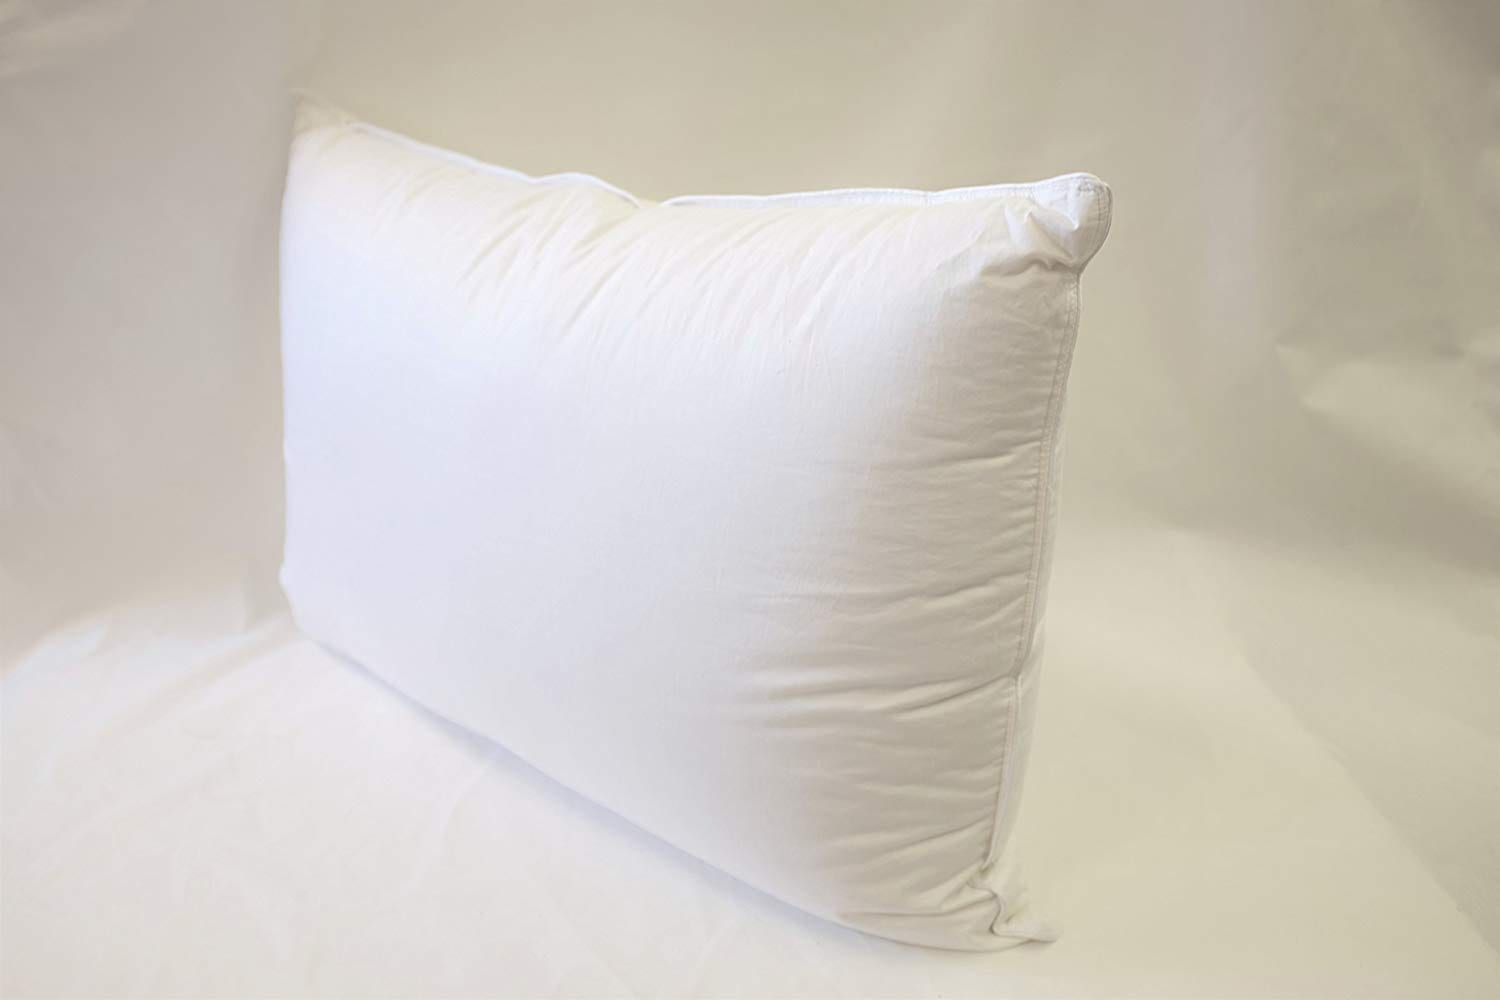 East Coast Bedding Best Down Pillows Review by www.snoremagazine.com